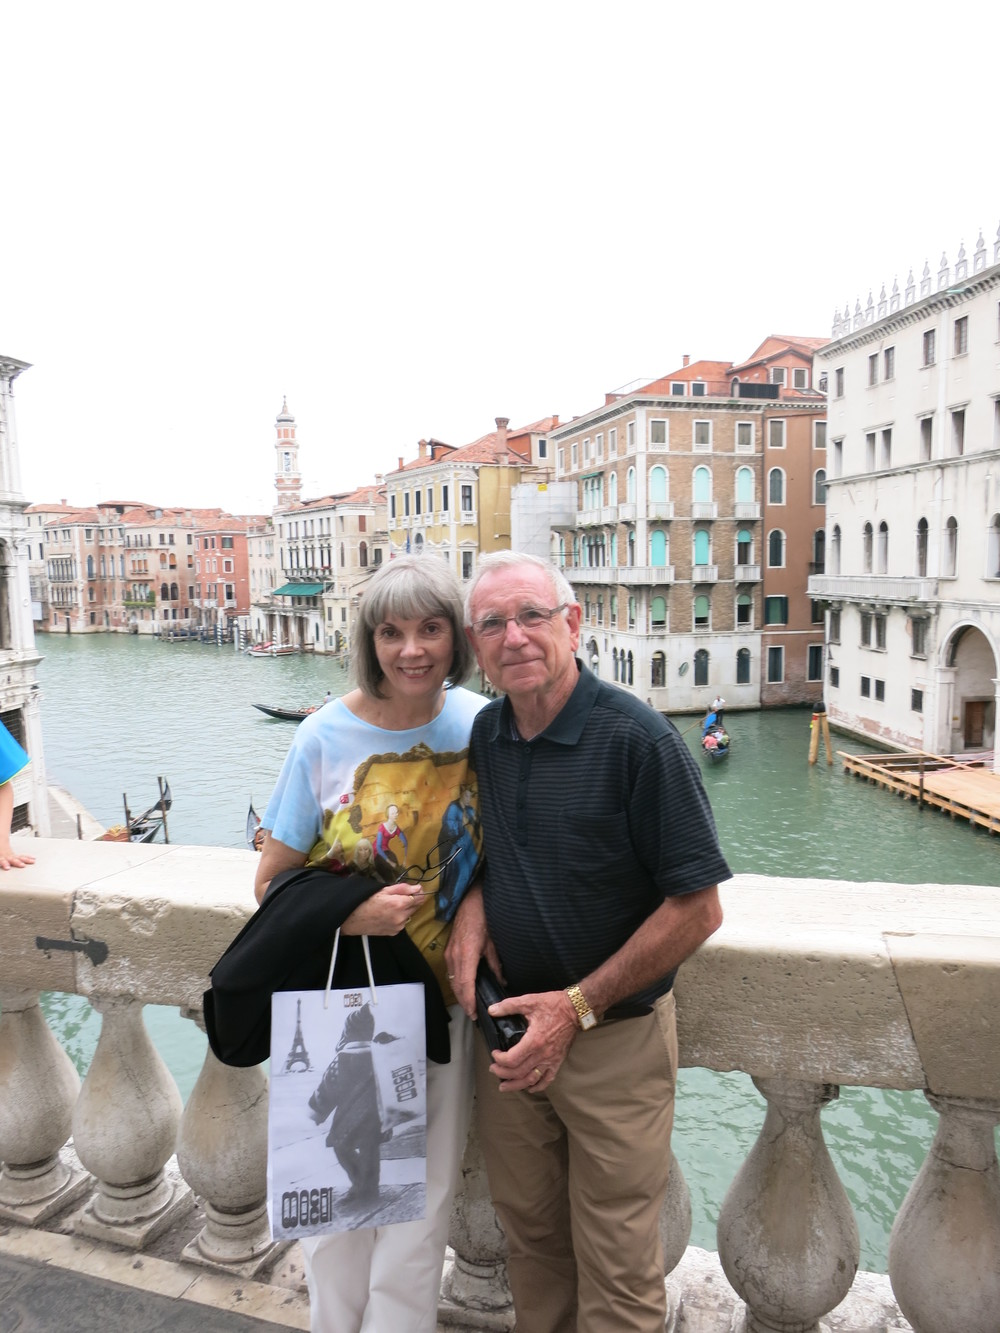 Moi with my Philip in Venice